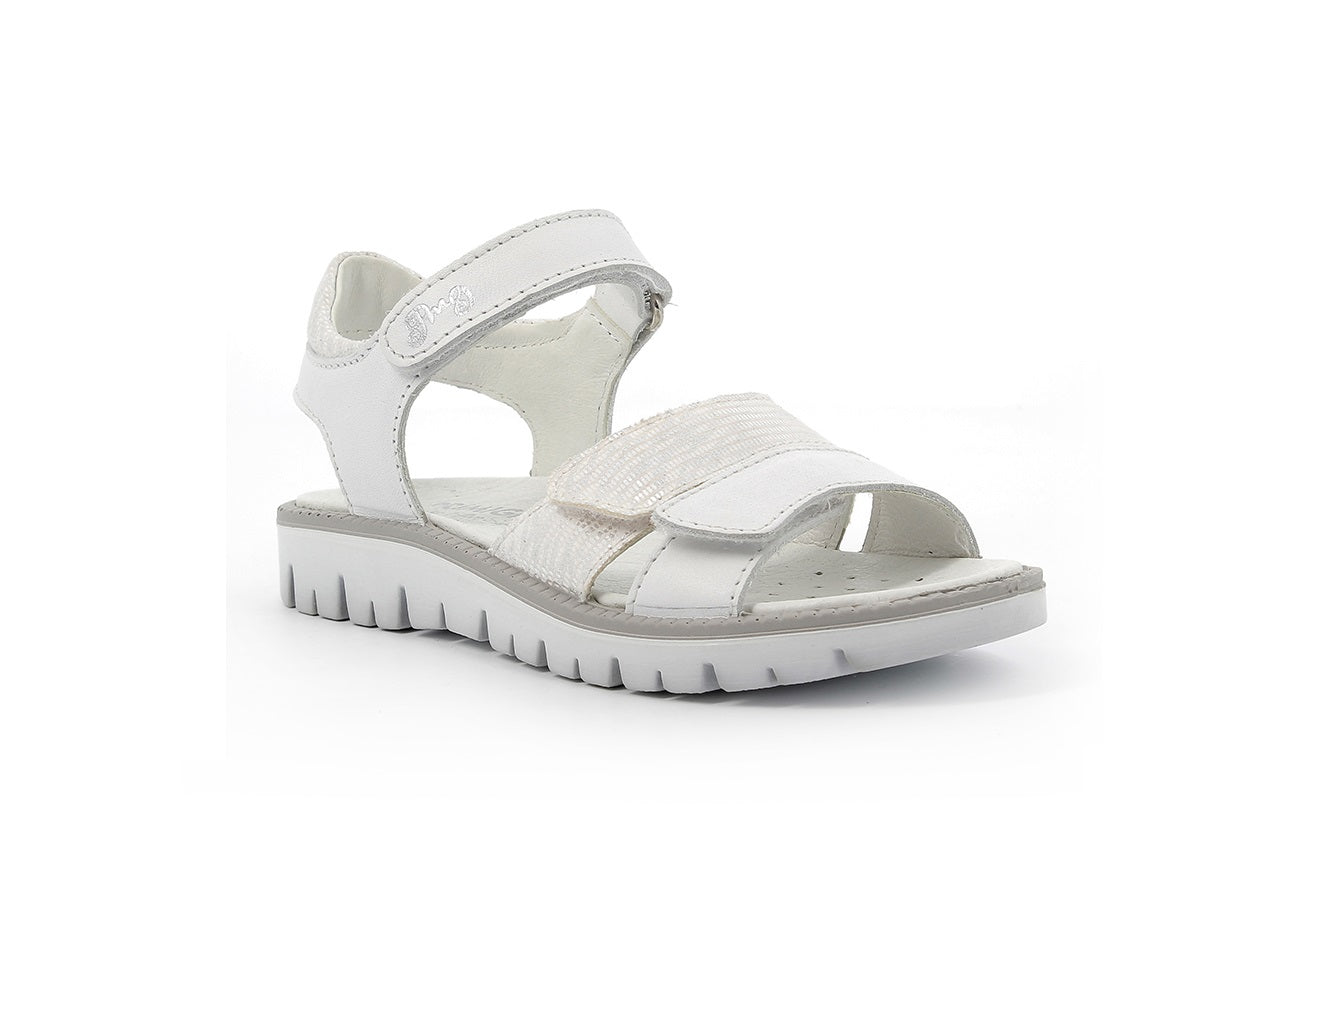 PRIMIGI GIRLS SANDAL-5386633-WHITE/SILVER